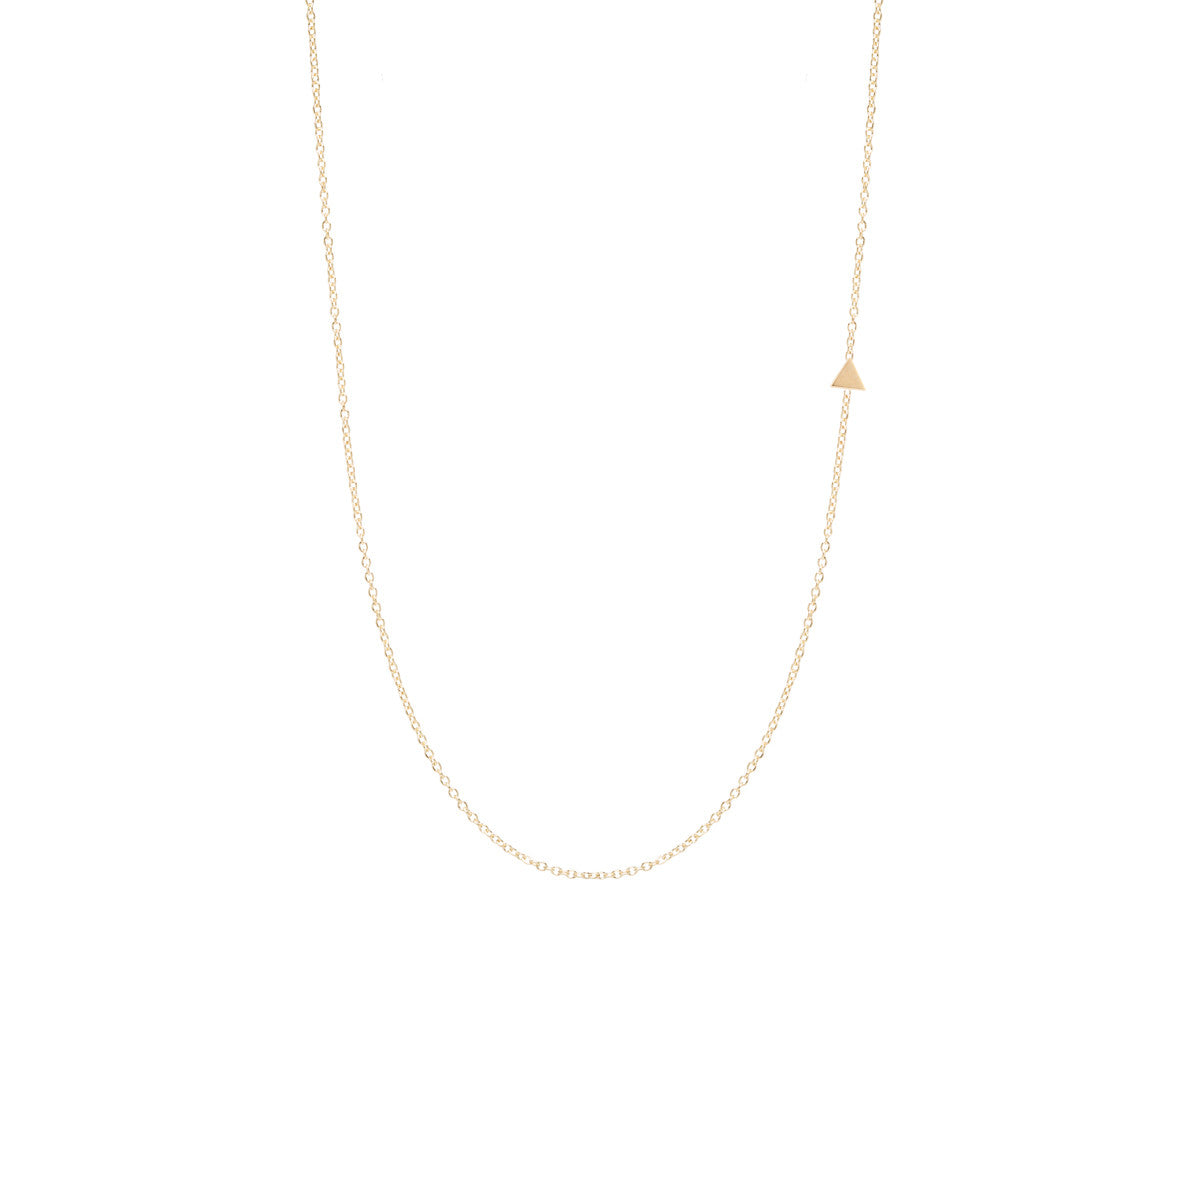 14k itty bitty off-center triangle necklace